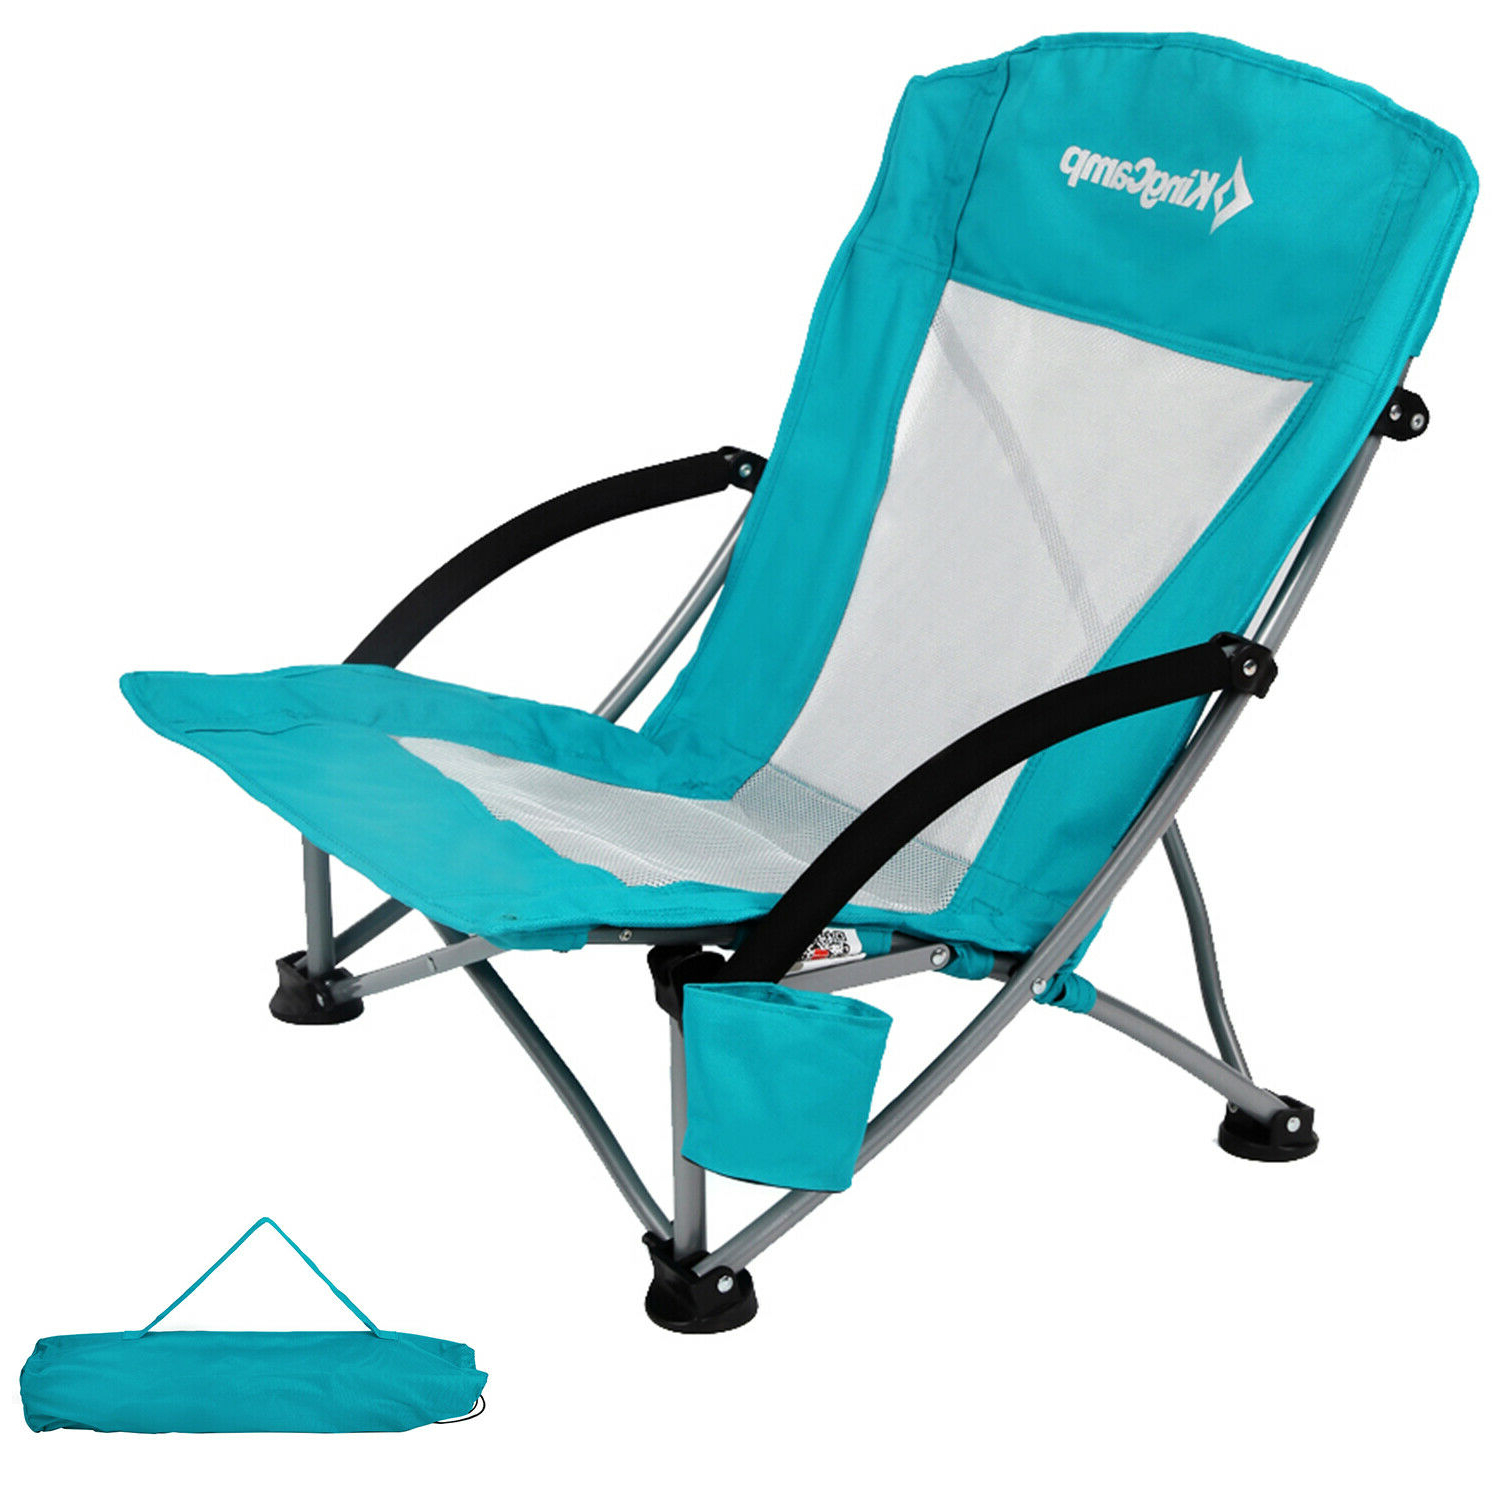 2019 Kingcamp Low Sling Beach Chair Camping Concert Folding Chairs Low Mesh Back With Regard To Sunset Patio Sling Folding Chairs With Headrest (Gallery 13 of 25)